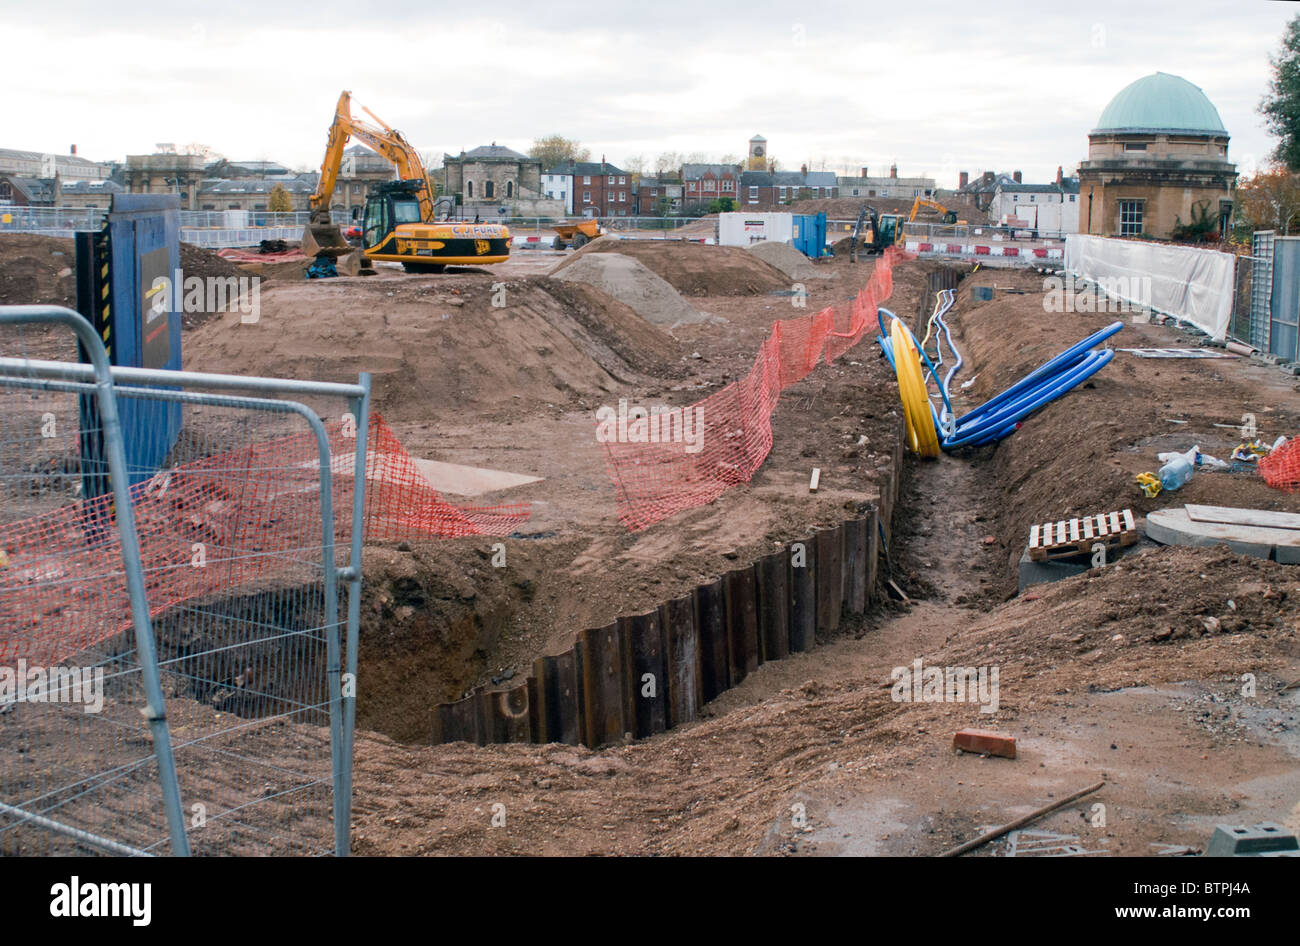 The Old Radcliffe Infirmary  Land Building Site - Stock Image